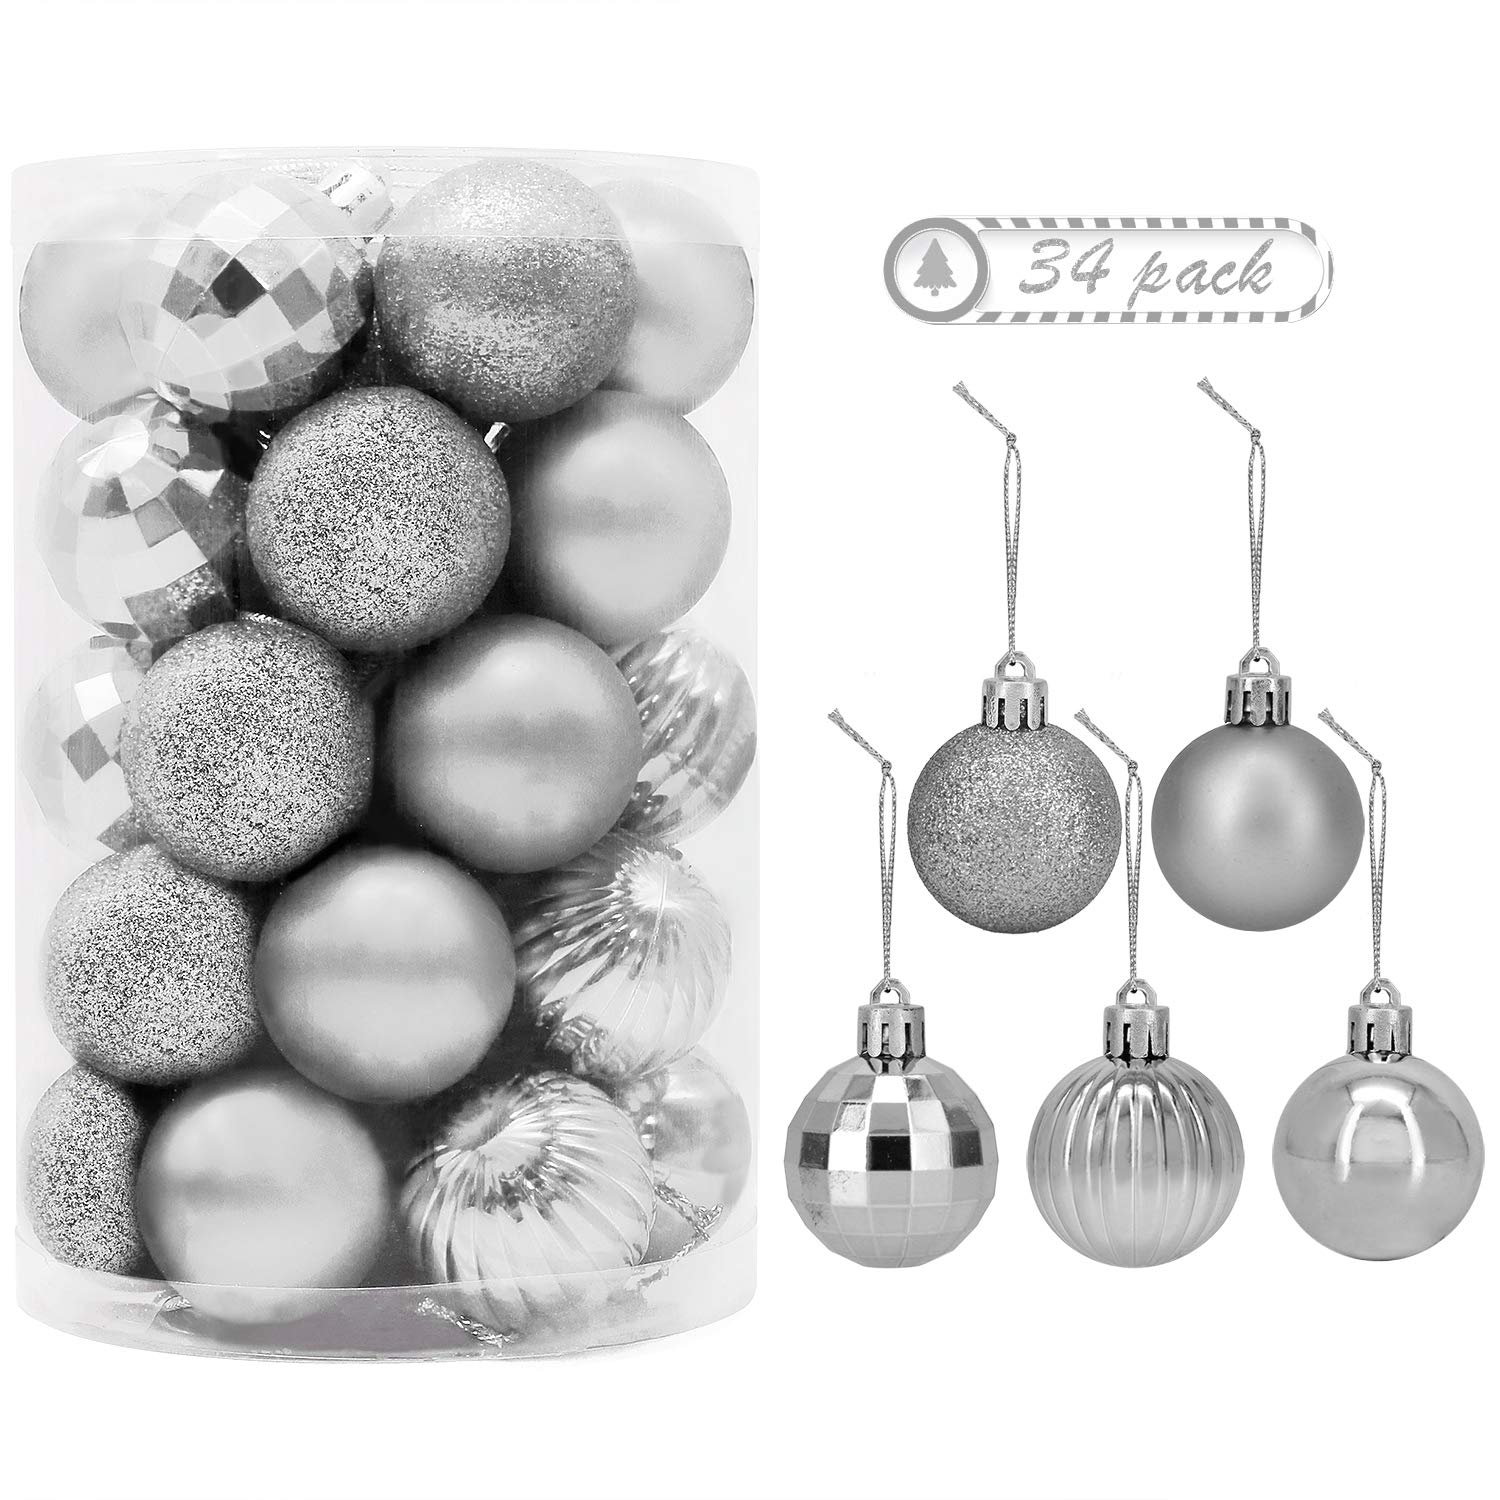 """34 PC Christmas 1.5"""" Ball Ornaments. 5 Assorted Style, Small Shatterproof Xmas Decorations for Christmas Tree, Home Holiday, Wedding Party. Tree Ornaments with Hooks Included. (Silver)"""